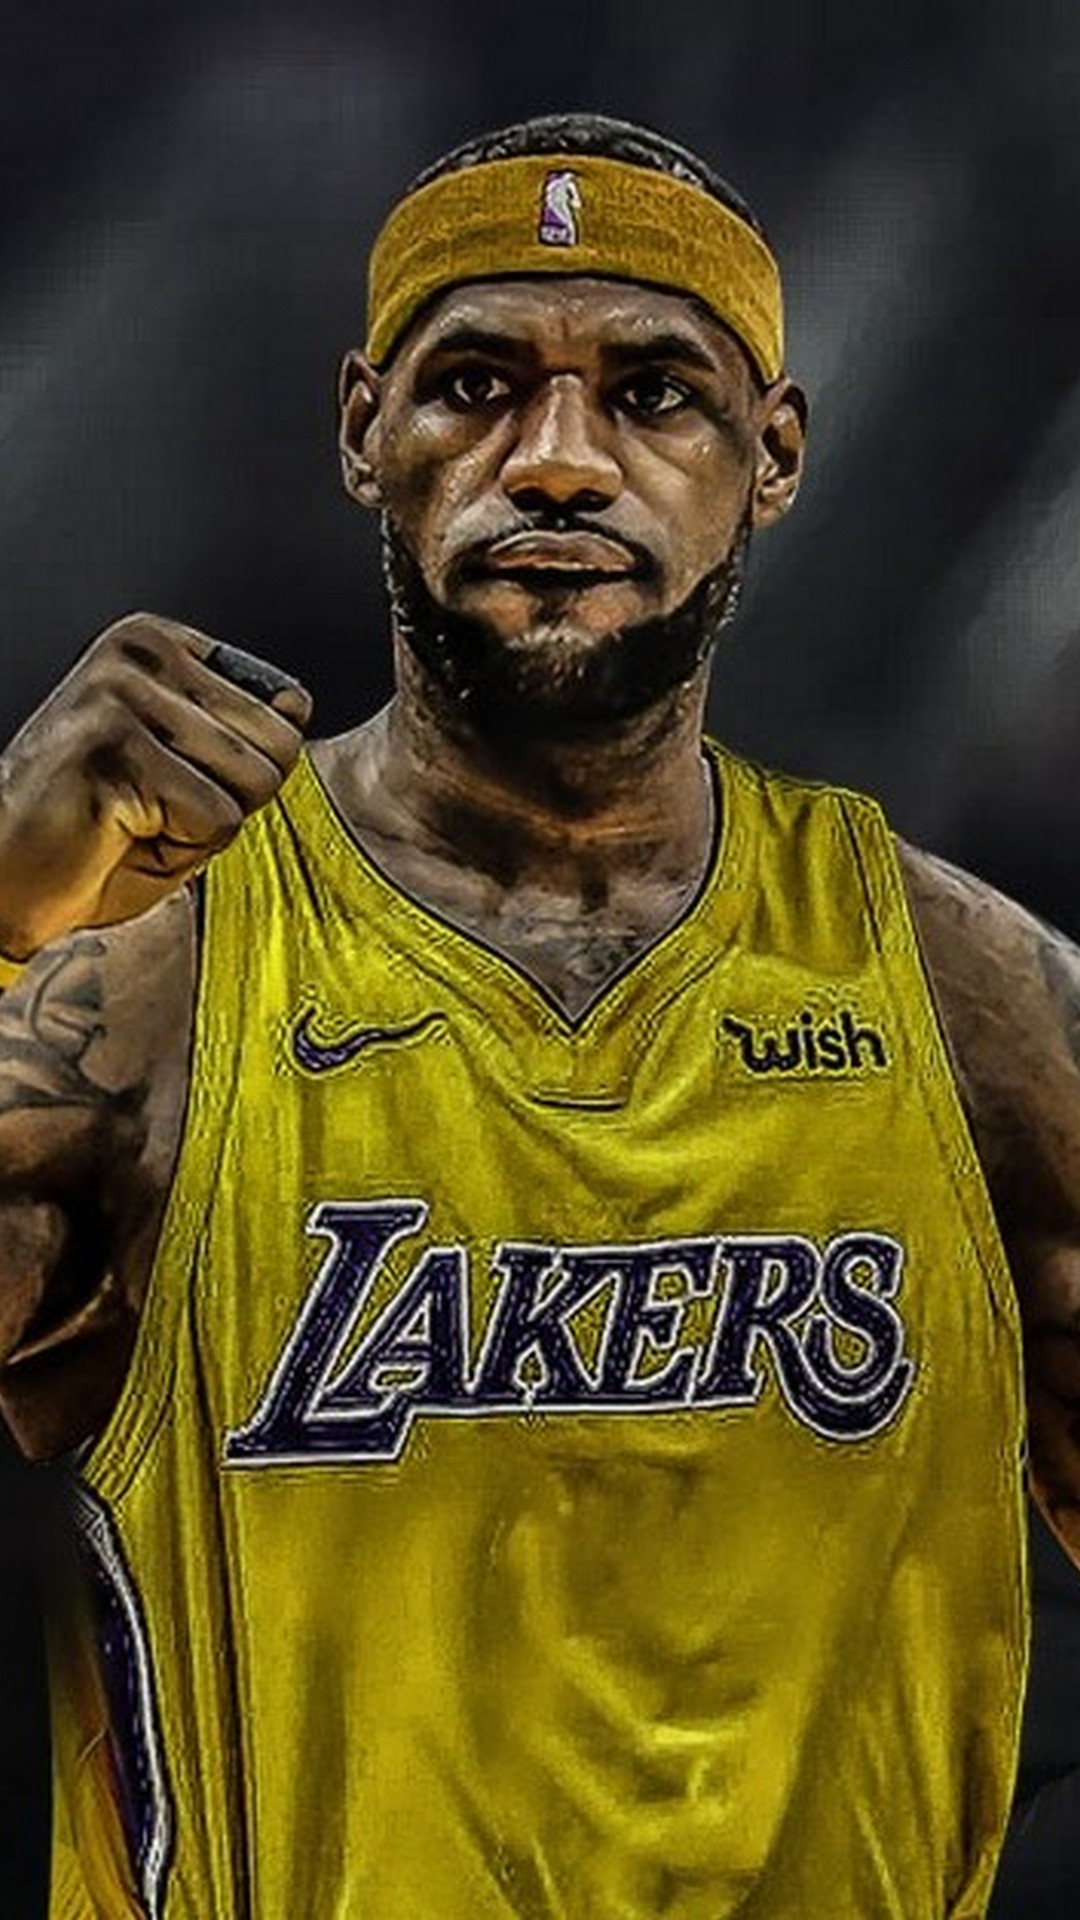 Lebron James Lakers Wallpaper For iPhone 2020 3D iPhone Wallpaper 1080x1920